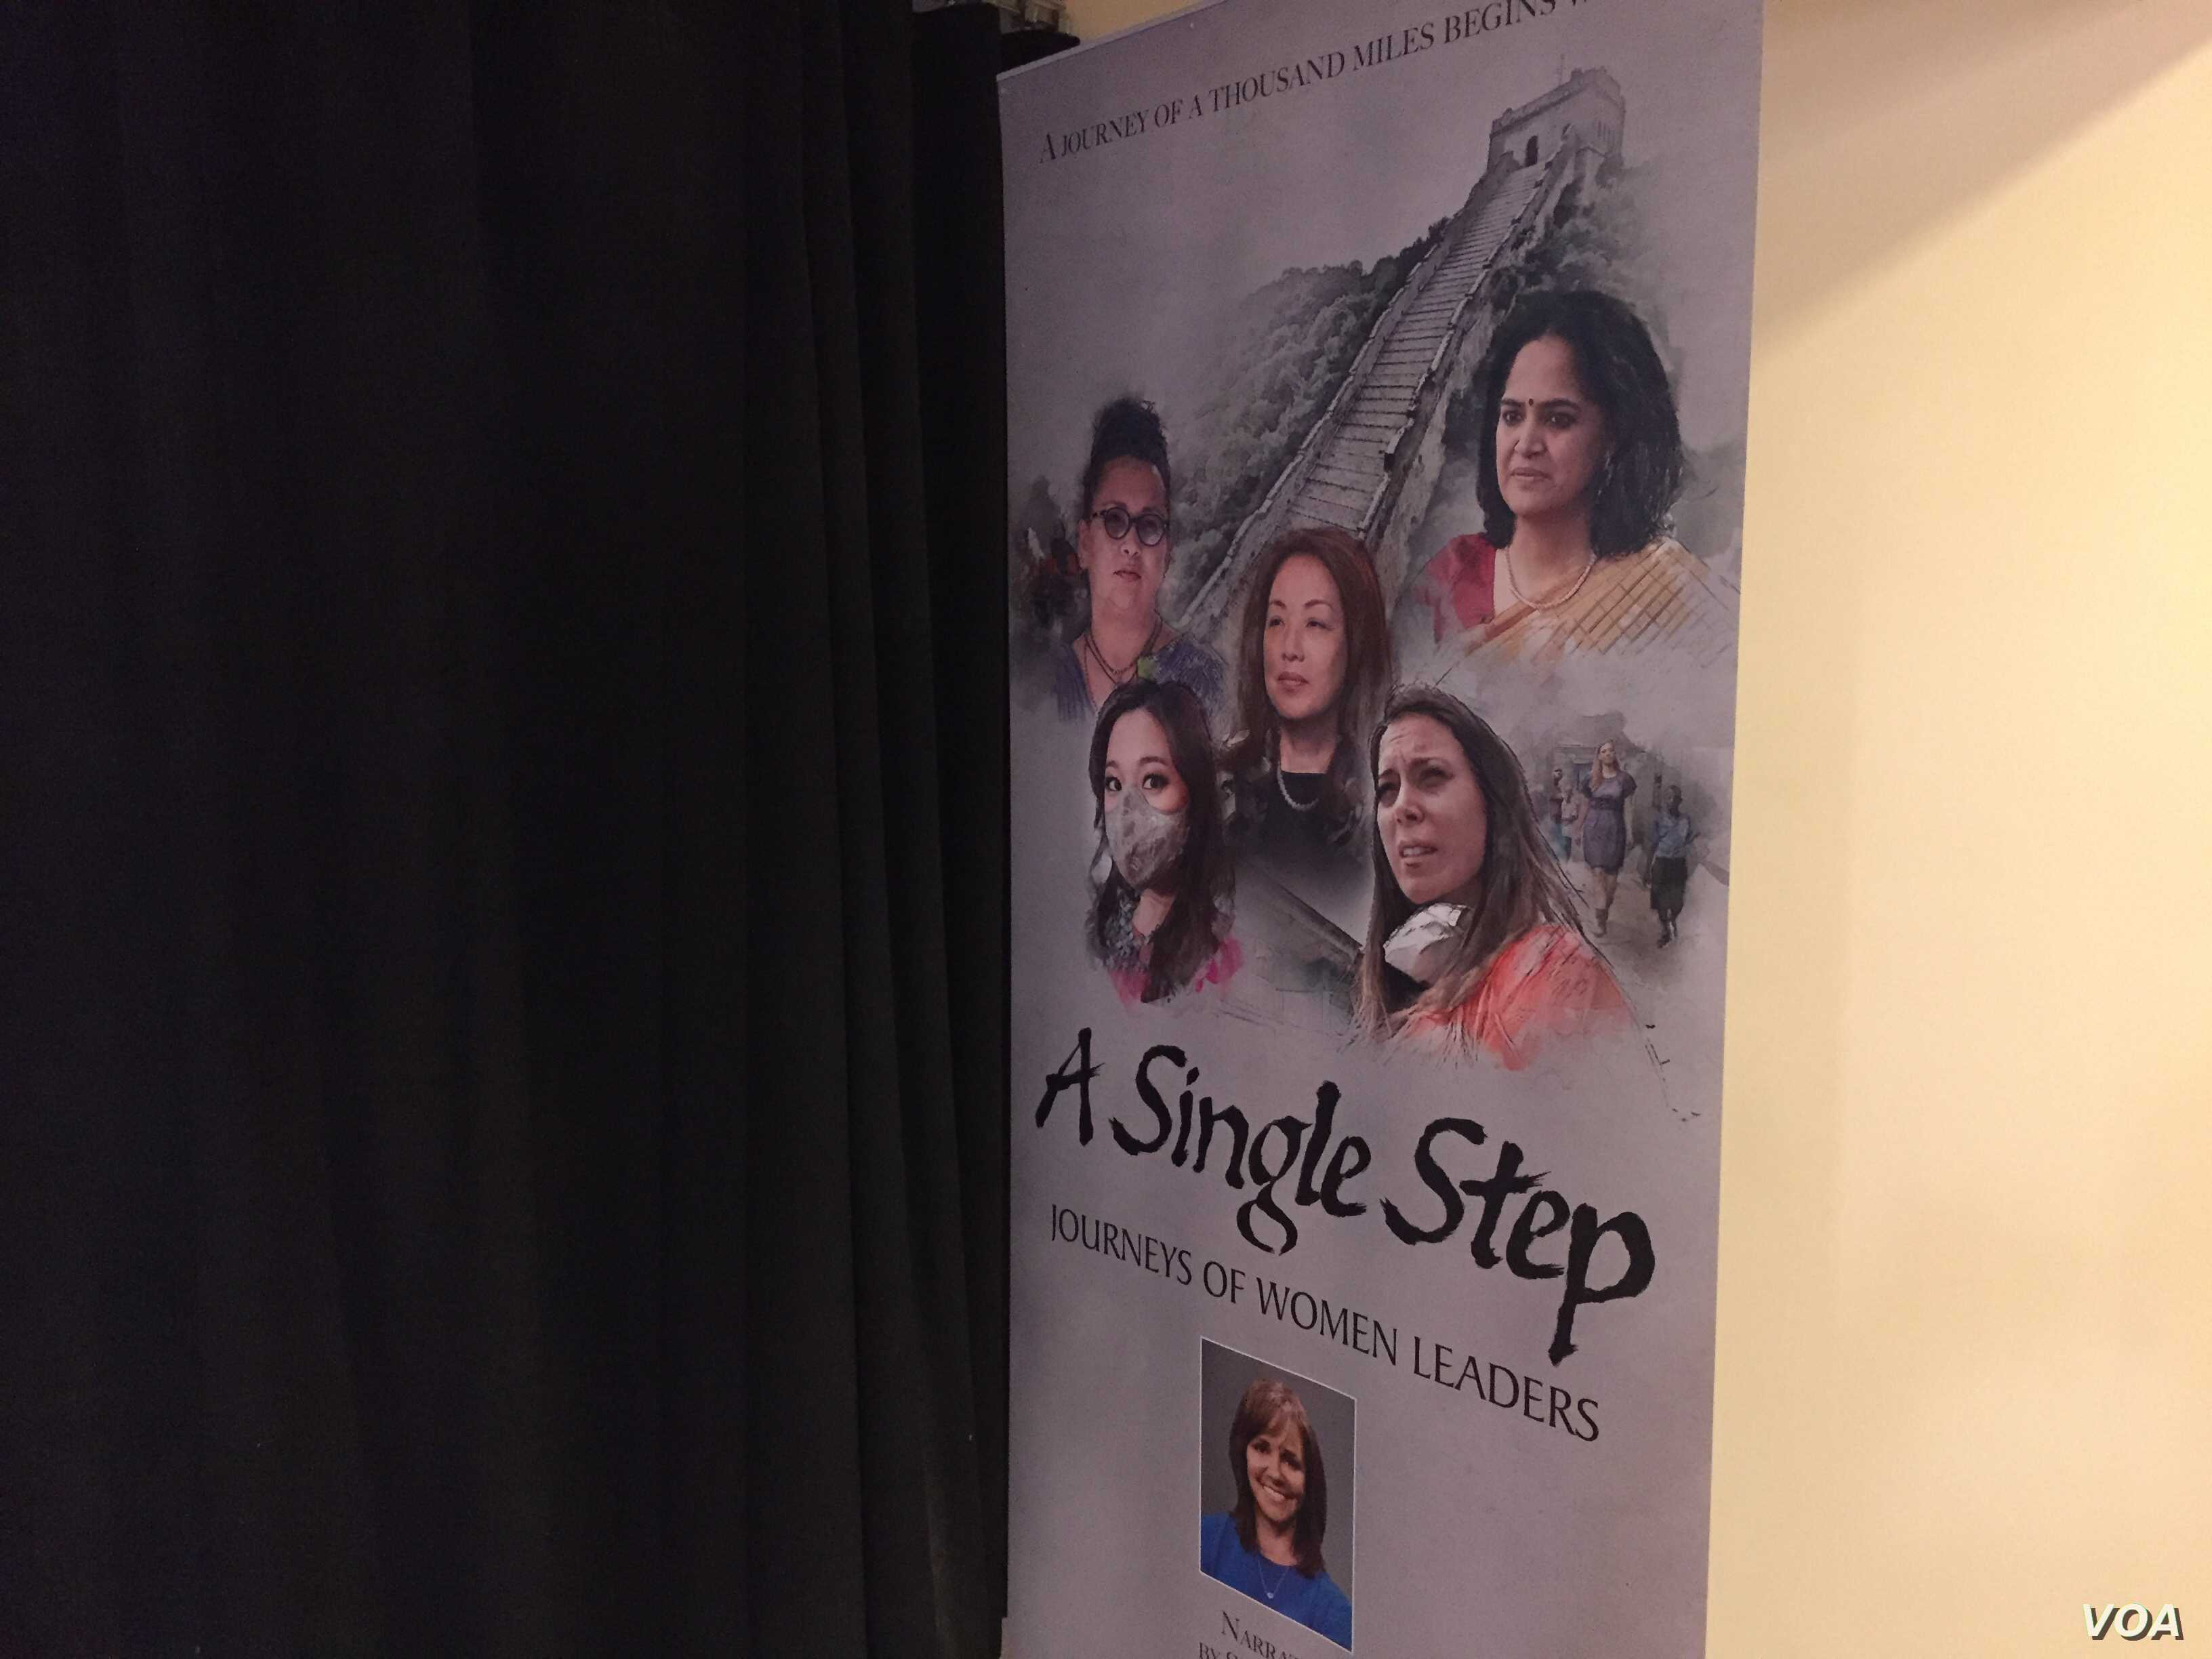 """""""A Single Step,"""" which premiered Thursday at the Asia Society in Manhattan, profiles five female champions of change who live in China, Japan, Fiji, India and Liberia. (Credit: Michael Lamon/VOA)"""